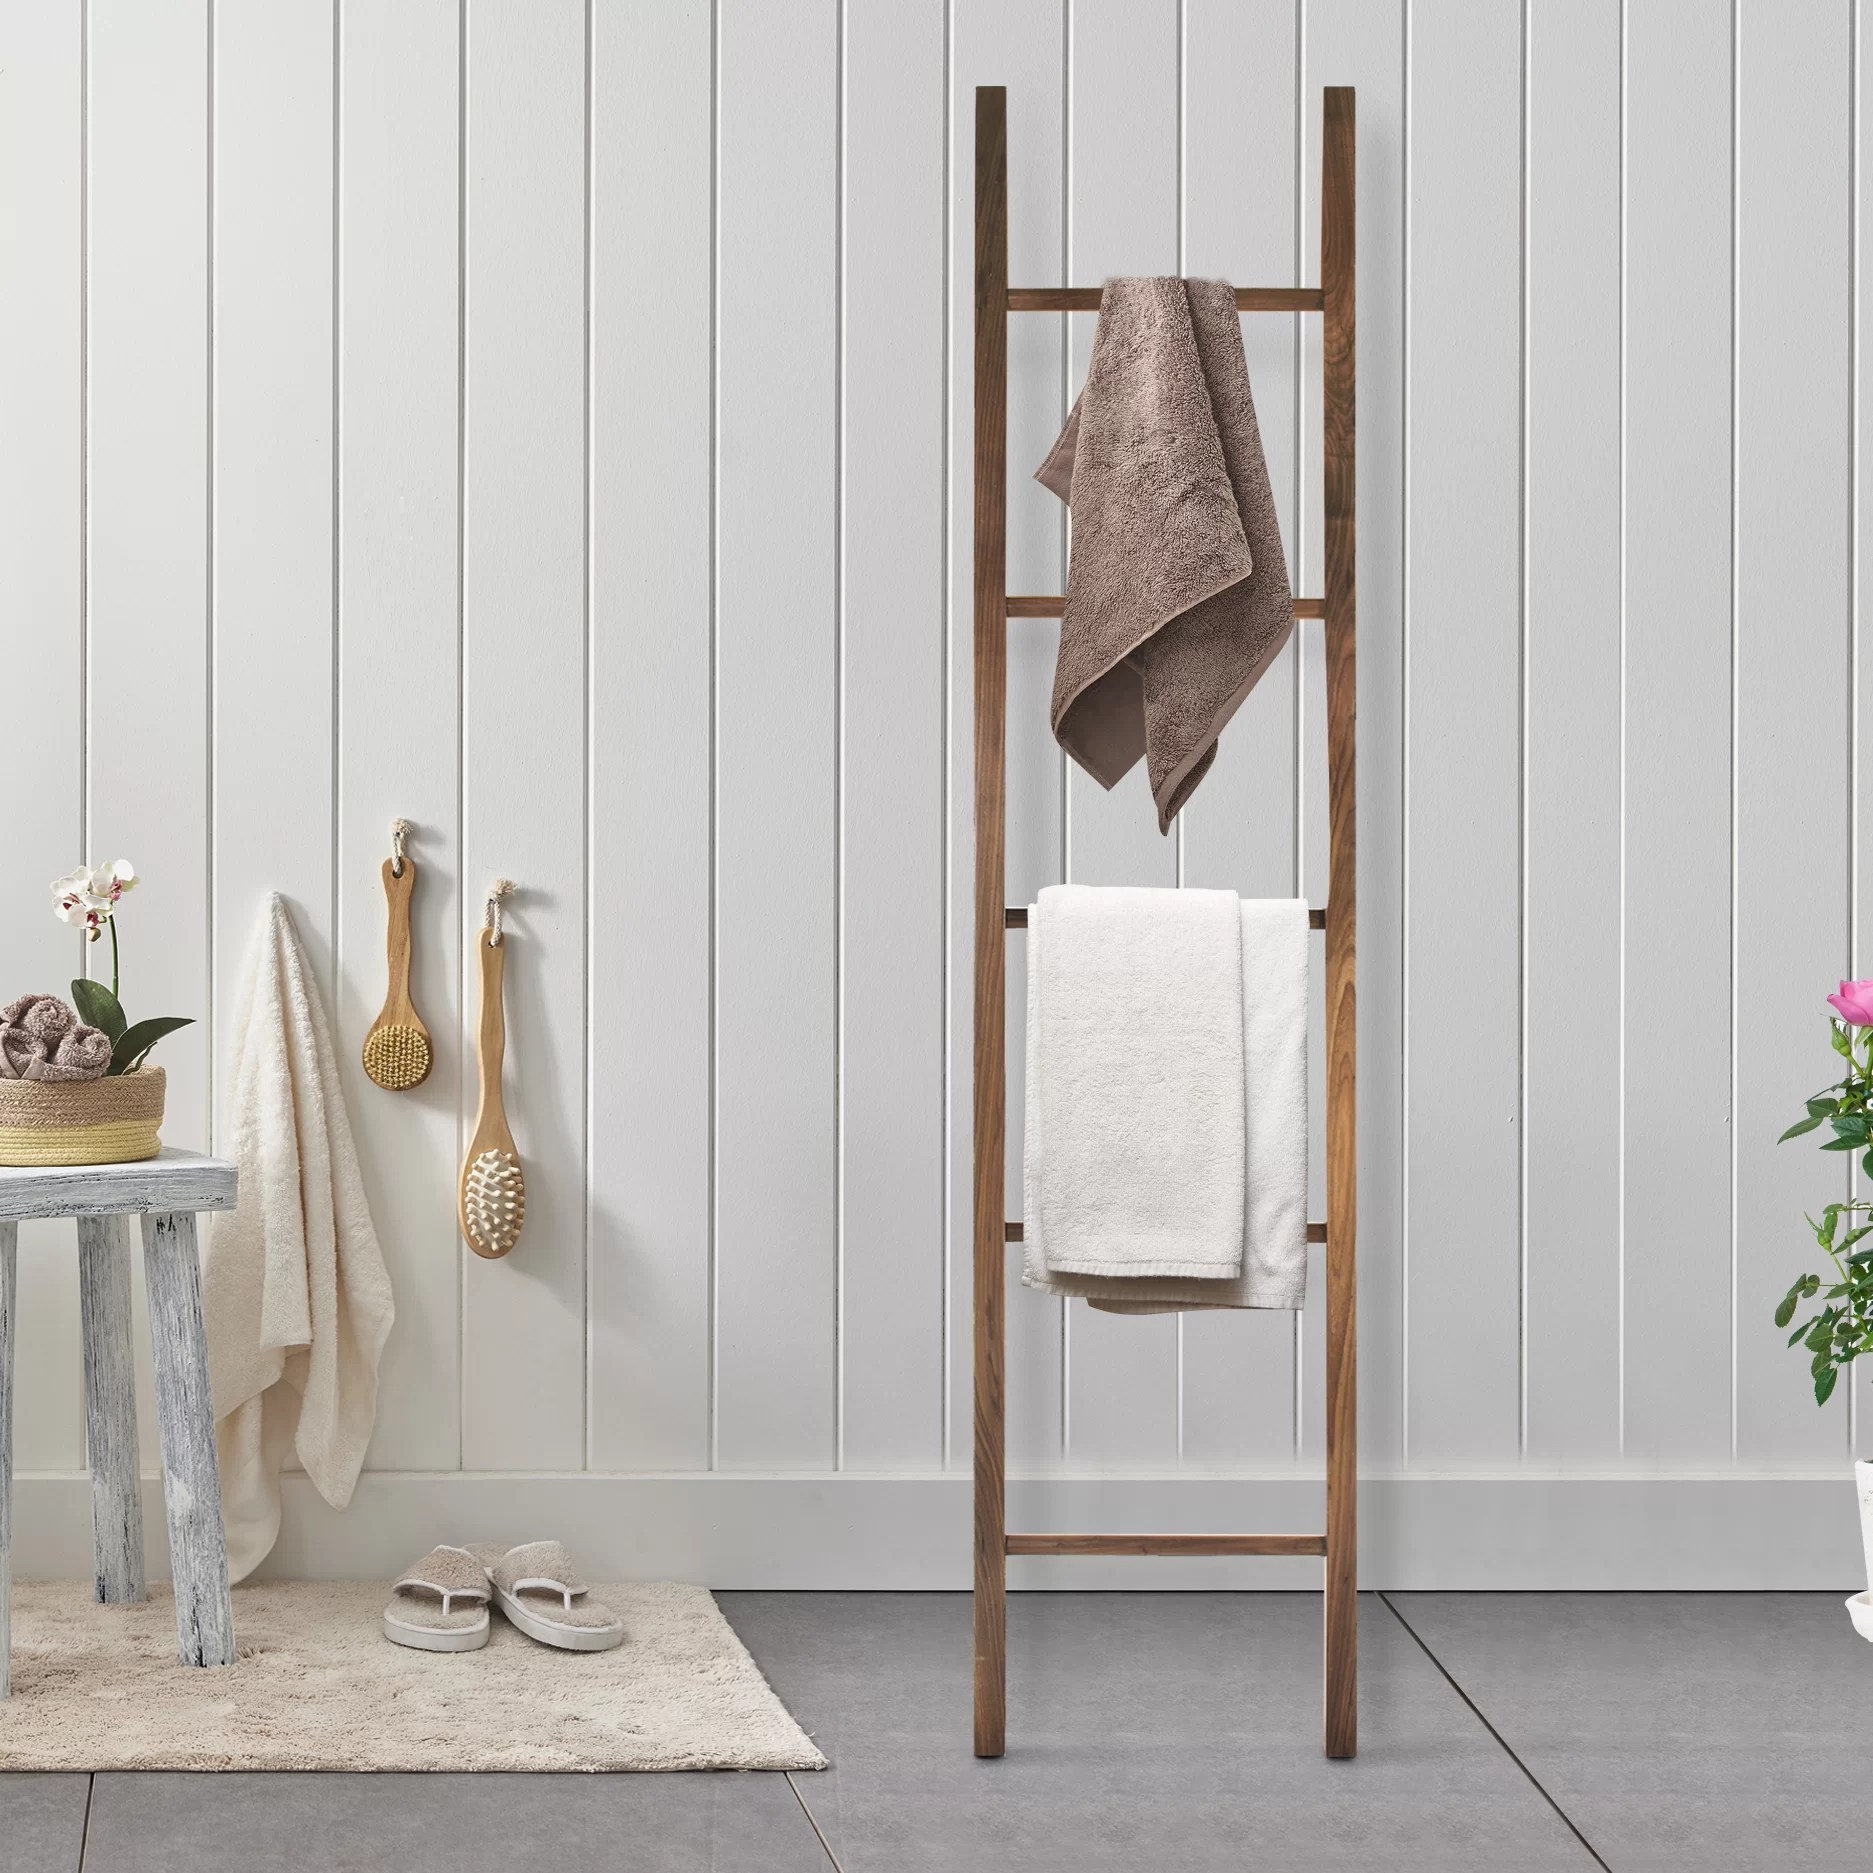 Kitchen Decor Ladder American Trail Decorative Ladder Free Standing Towel Rack